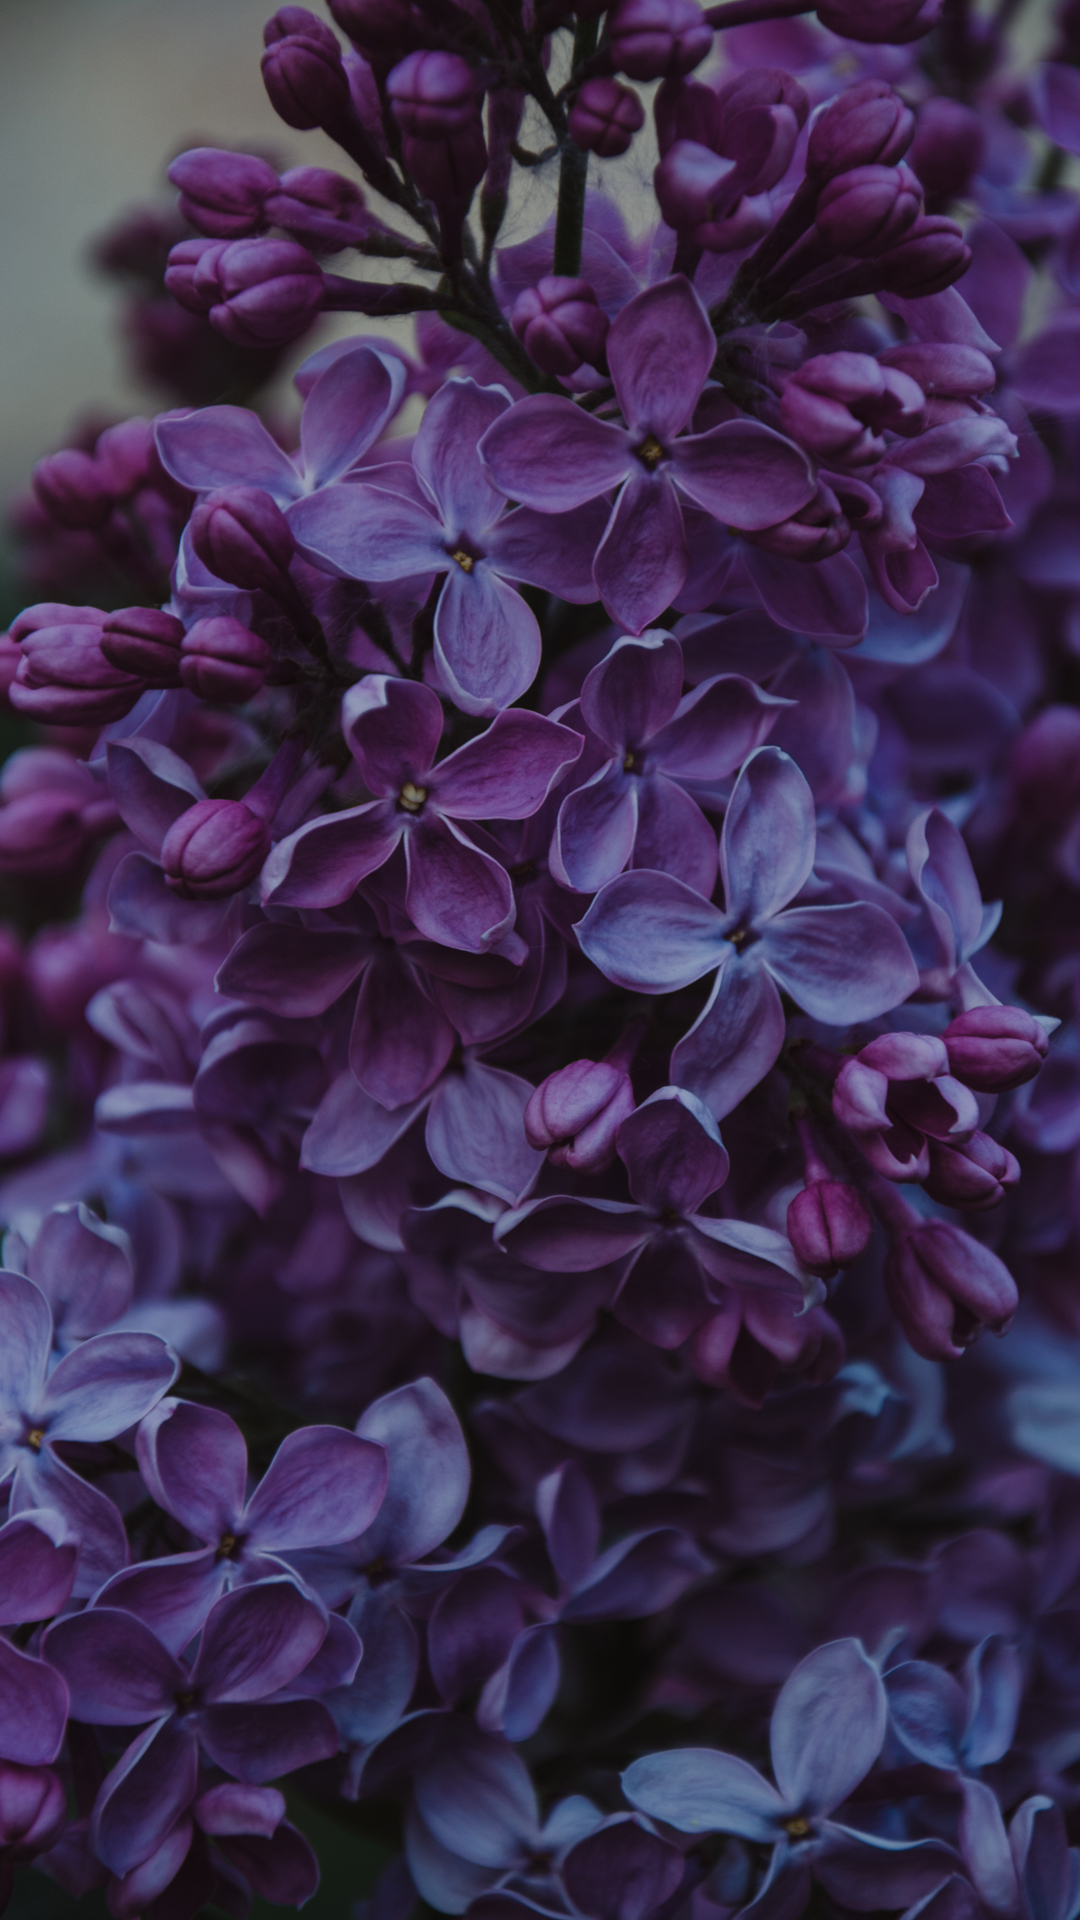 purple flowers wallpaper for iPhone